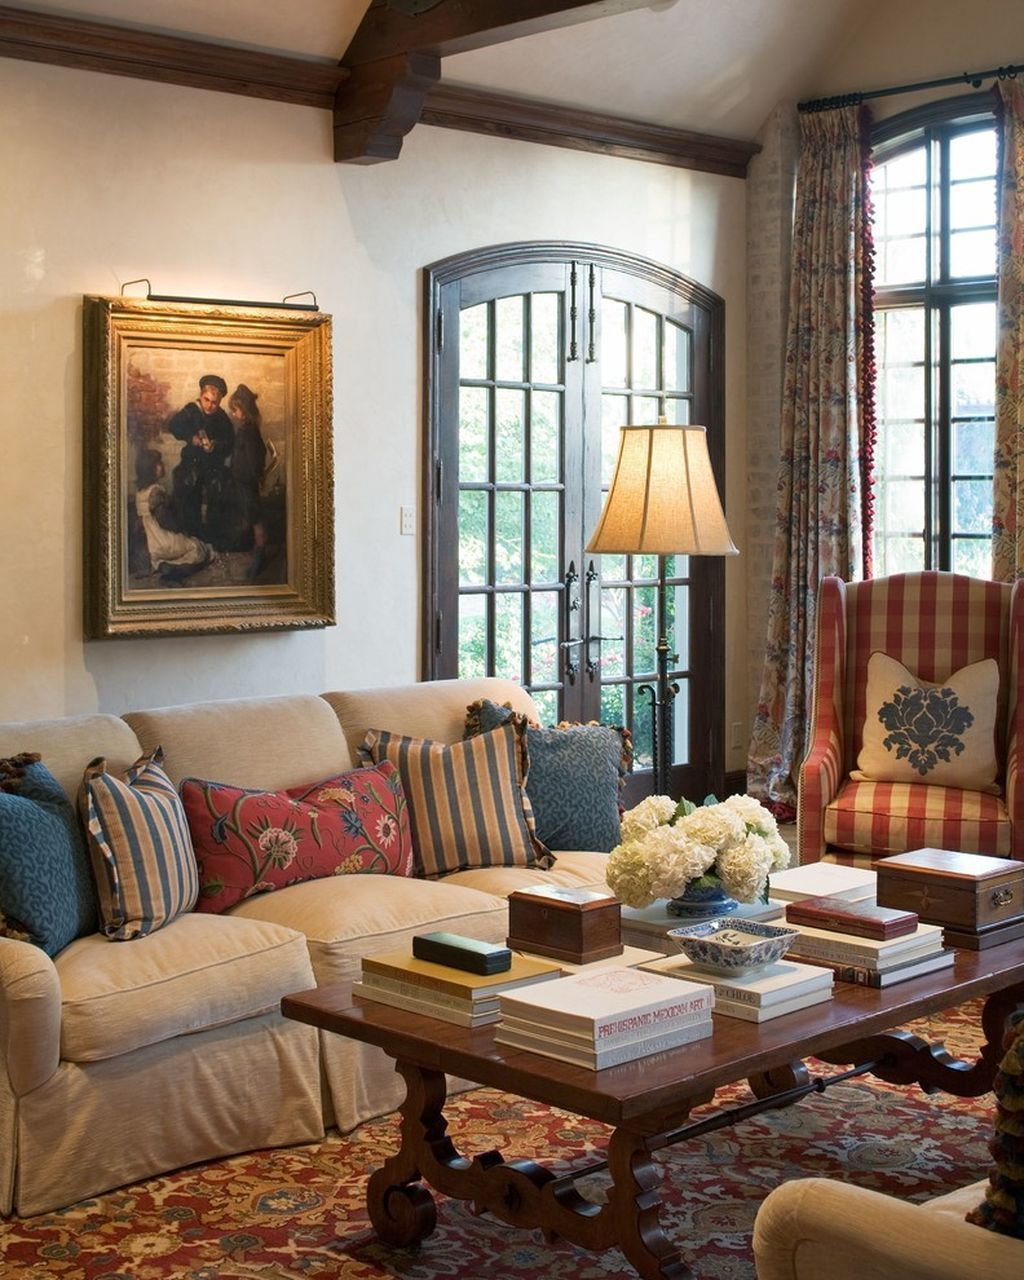 Top 11 Incredible Cozy And Rustic Chic Living Room For: Amazing French Country Cottage Decor 37